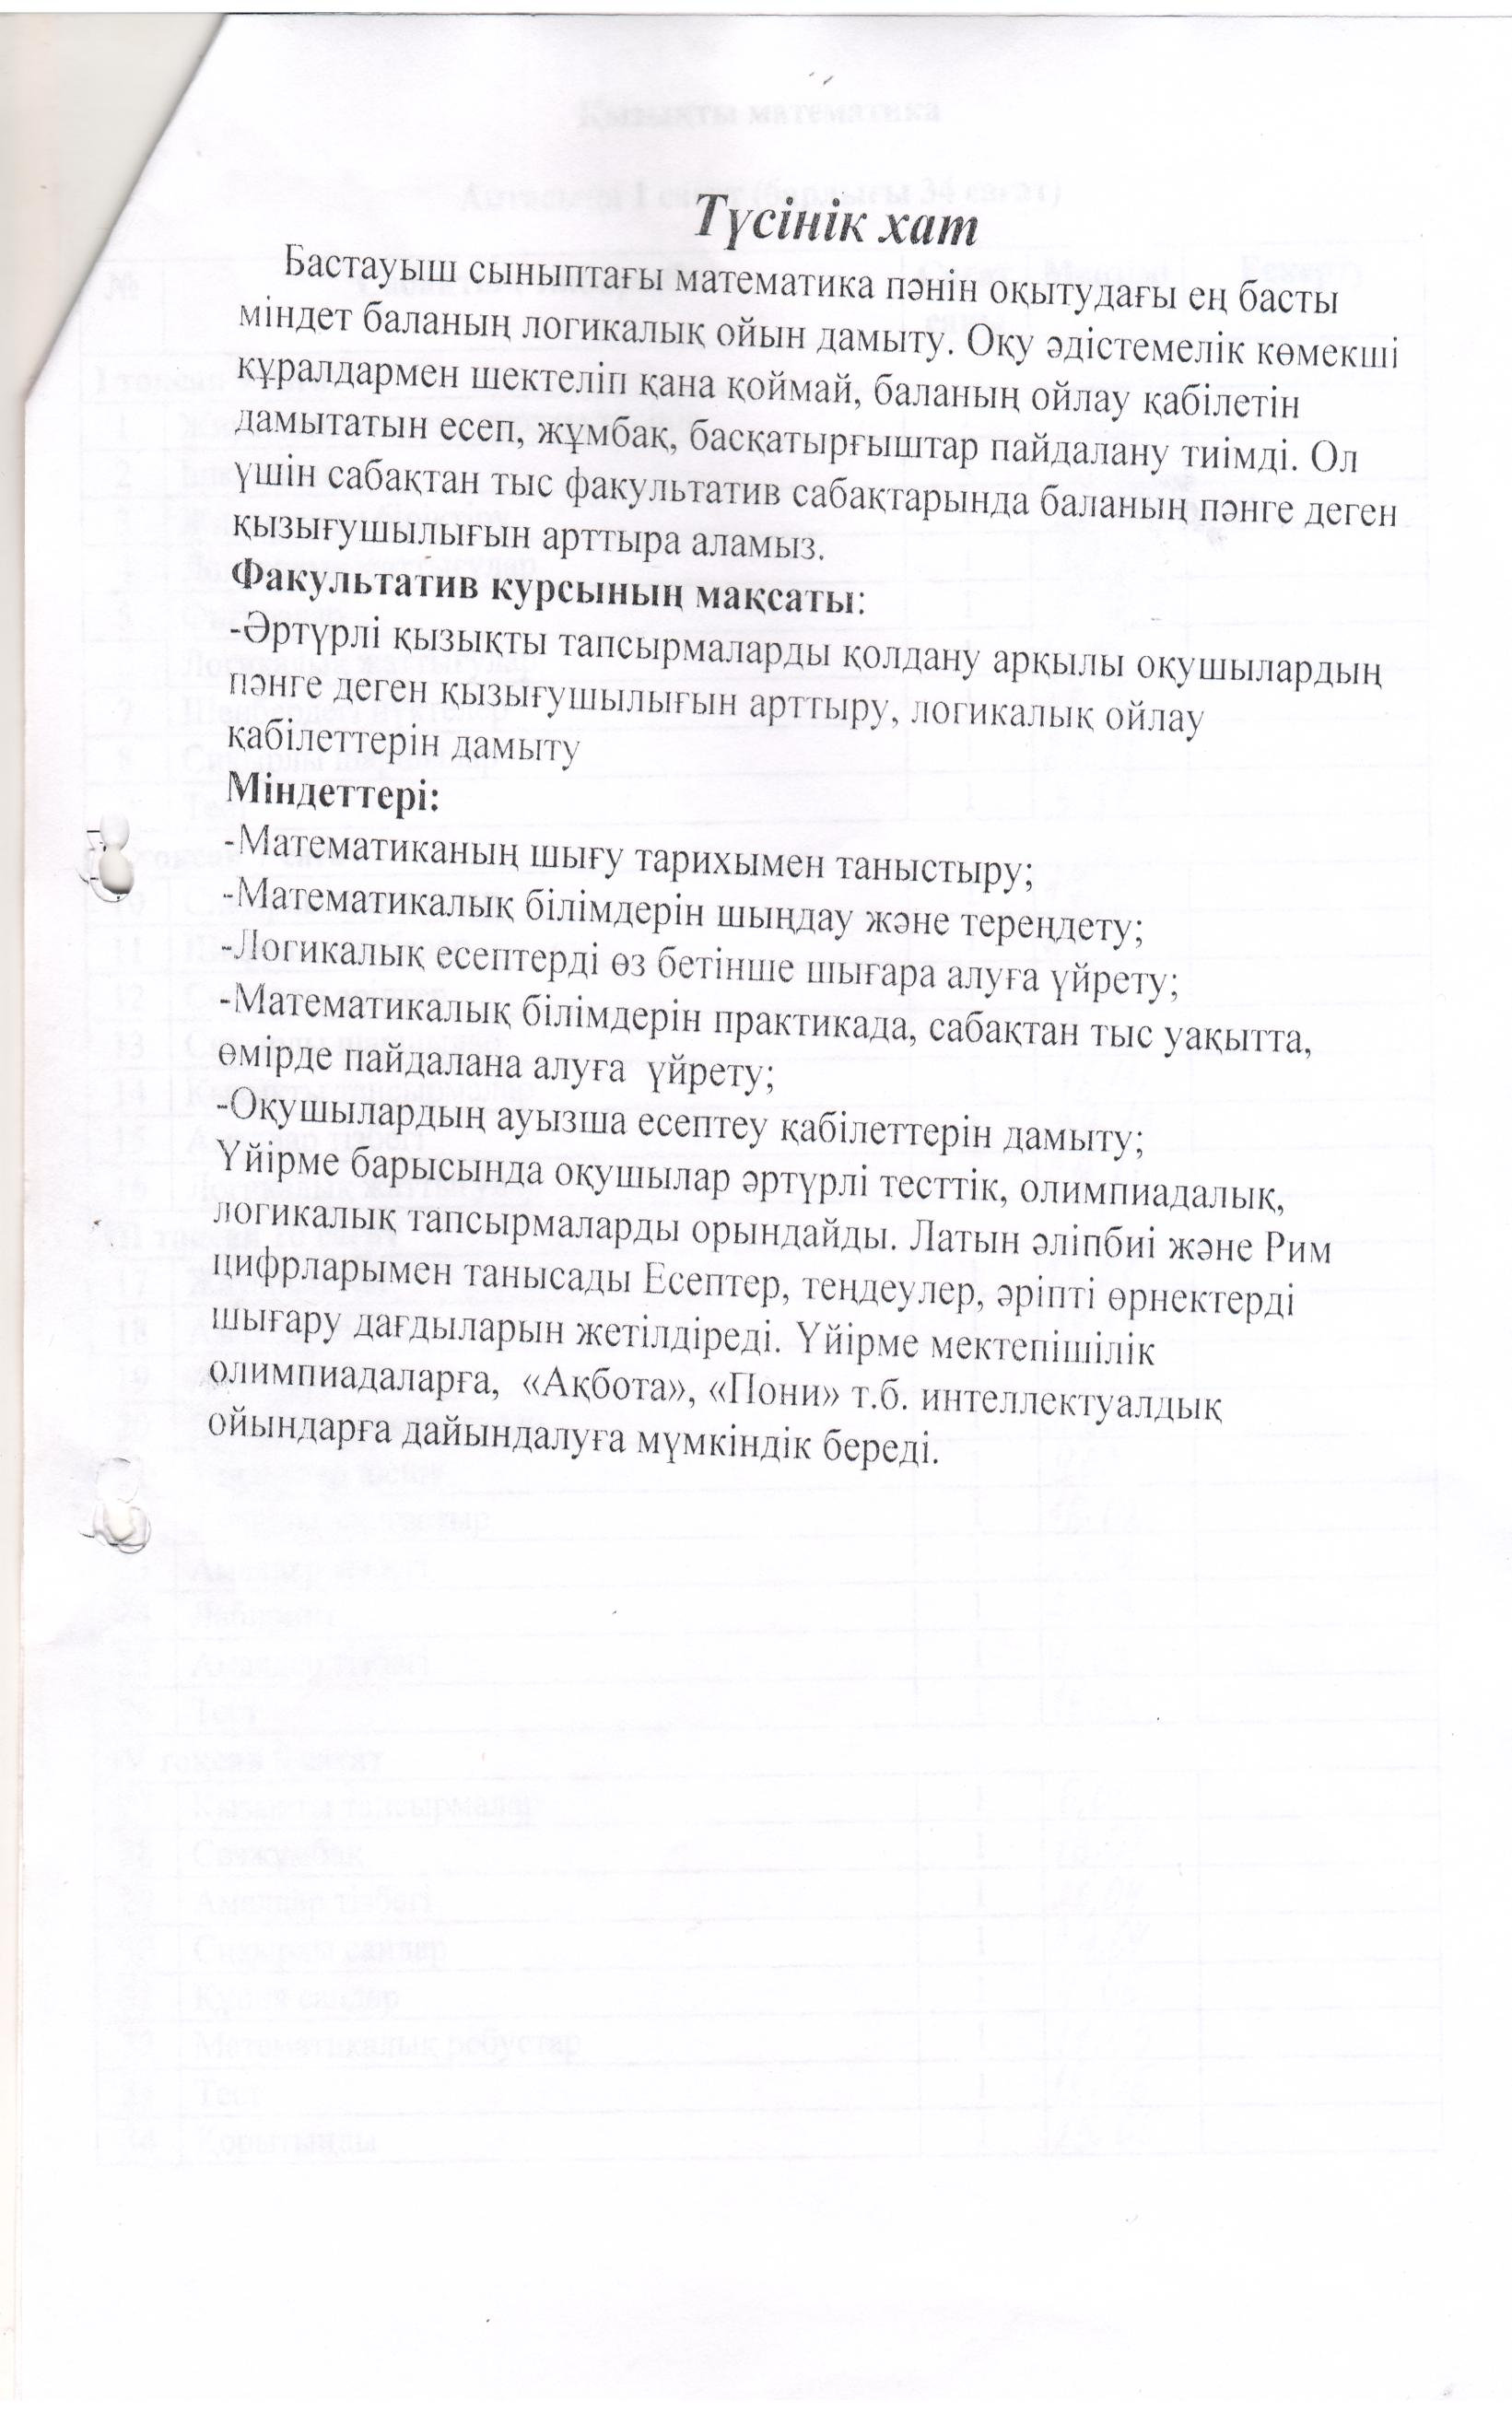 C:\Users\Жанаргуль\Pictures\2015-09-10\Scan1.TIF